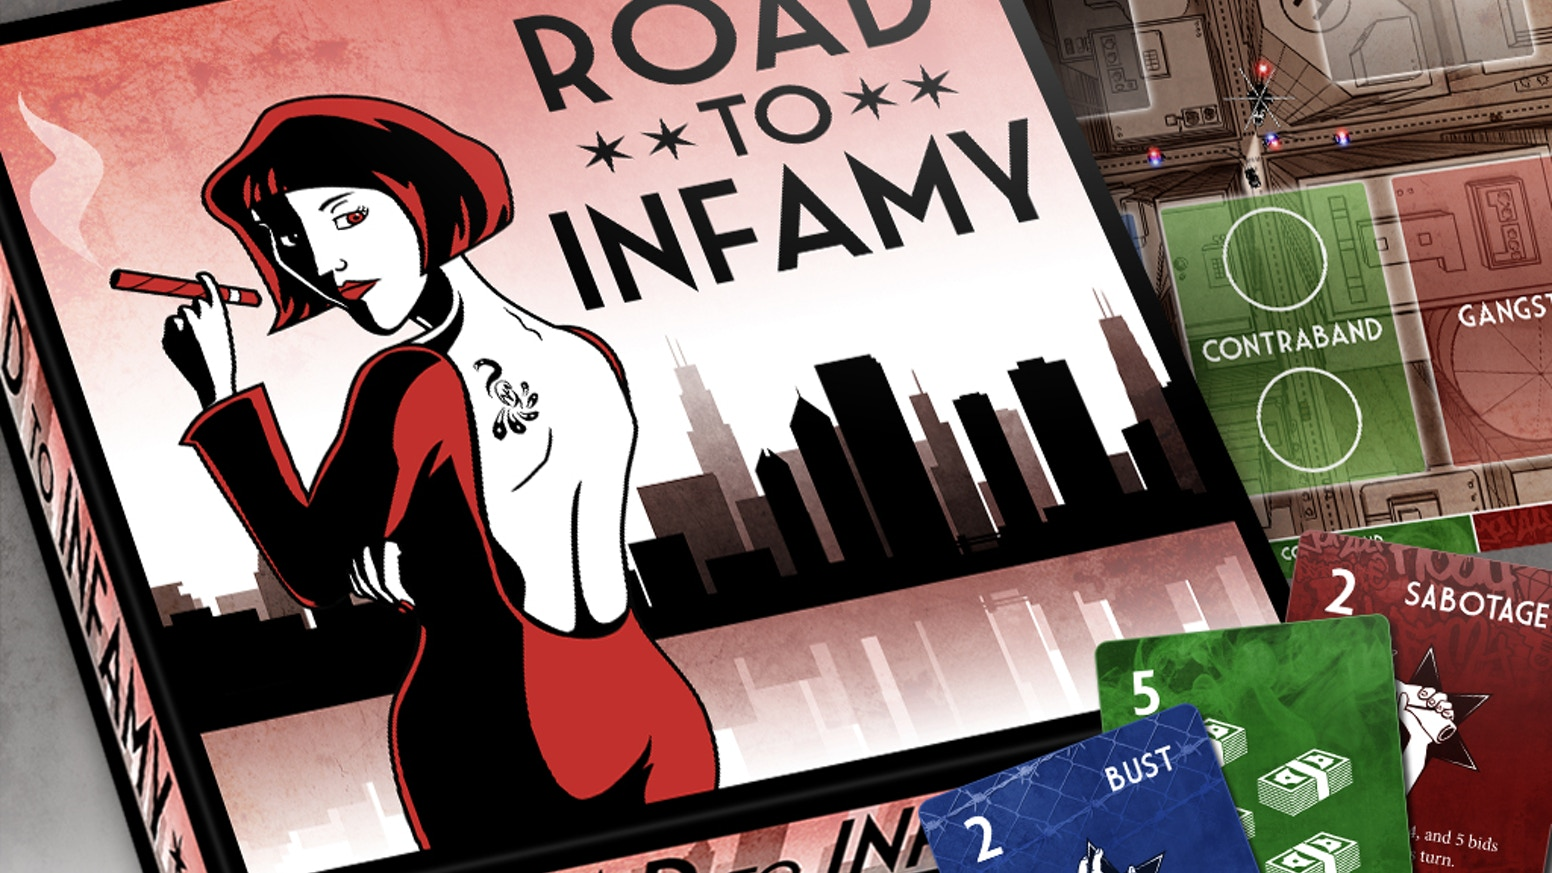 A fast-paced board game where gang leaders compete to run the most infamous crime operation in Chicago. Order now at RoadToInfamy.com